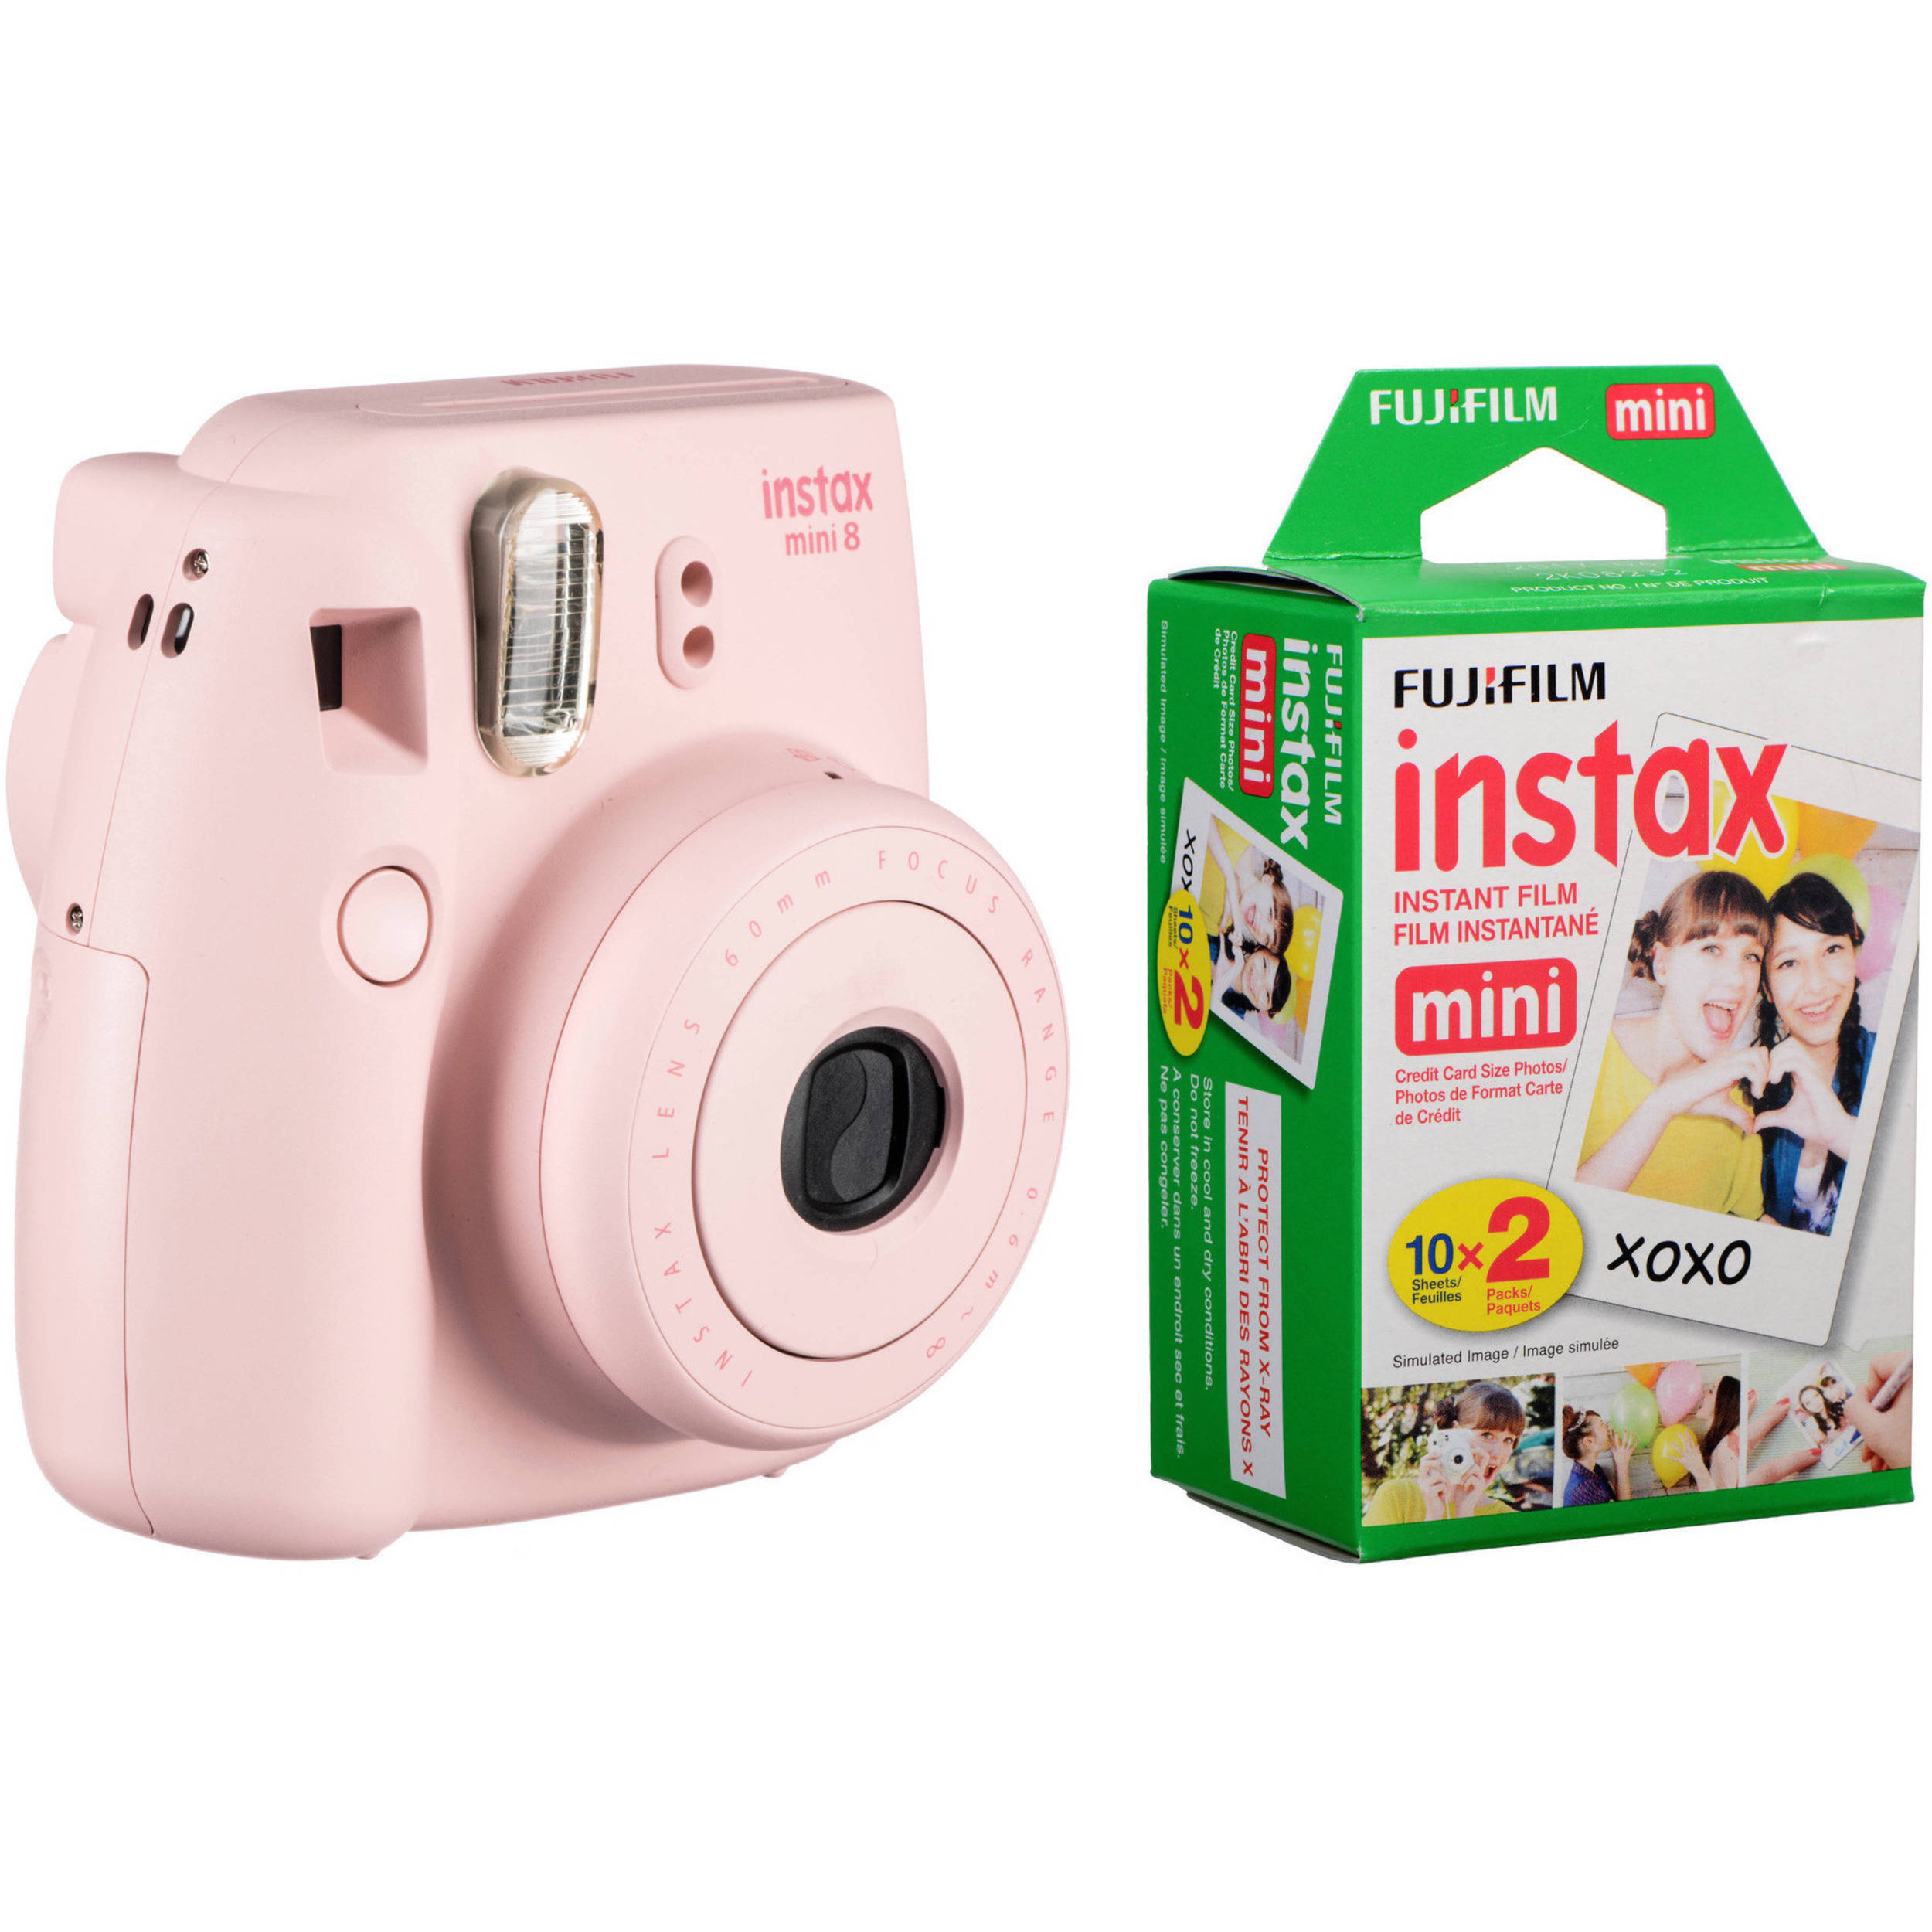 fujifilm instax mini 8 instant film camera with twin pack. Black Bedroom Furniture Sets. Home Design Ideas